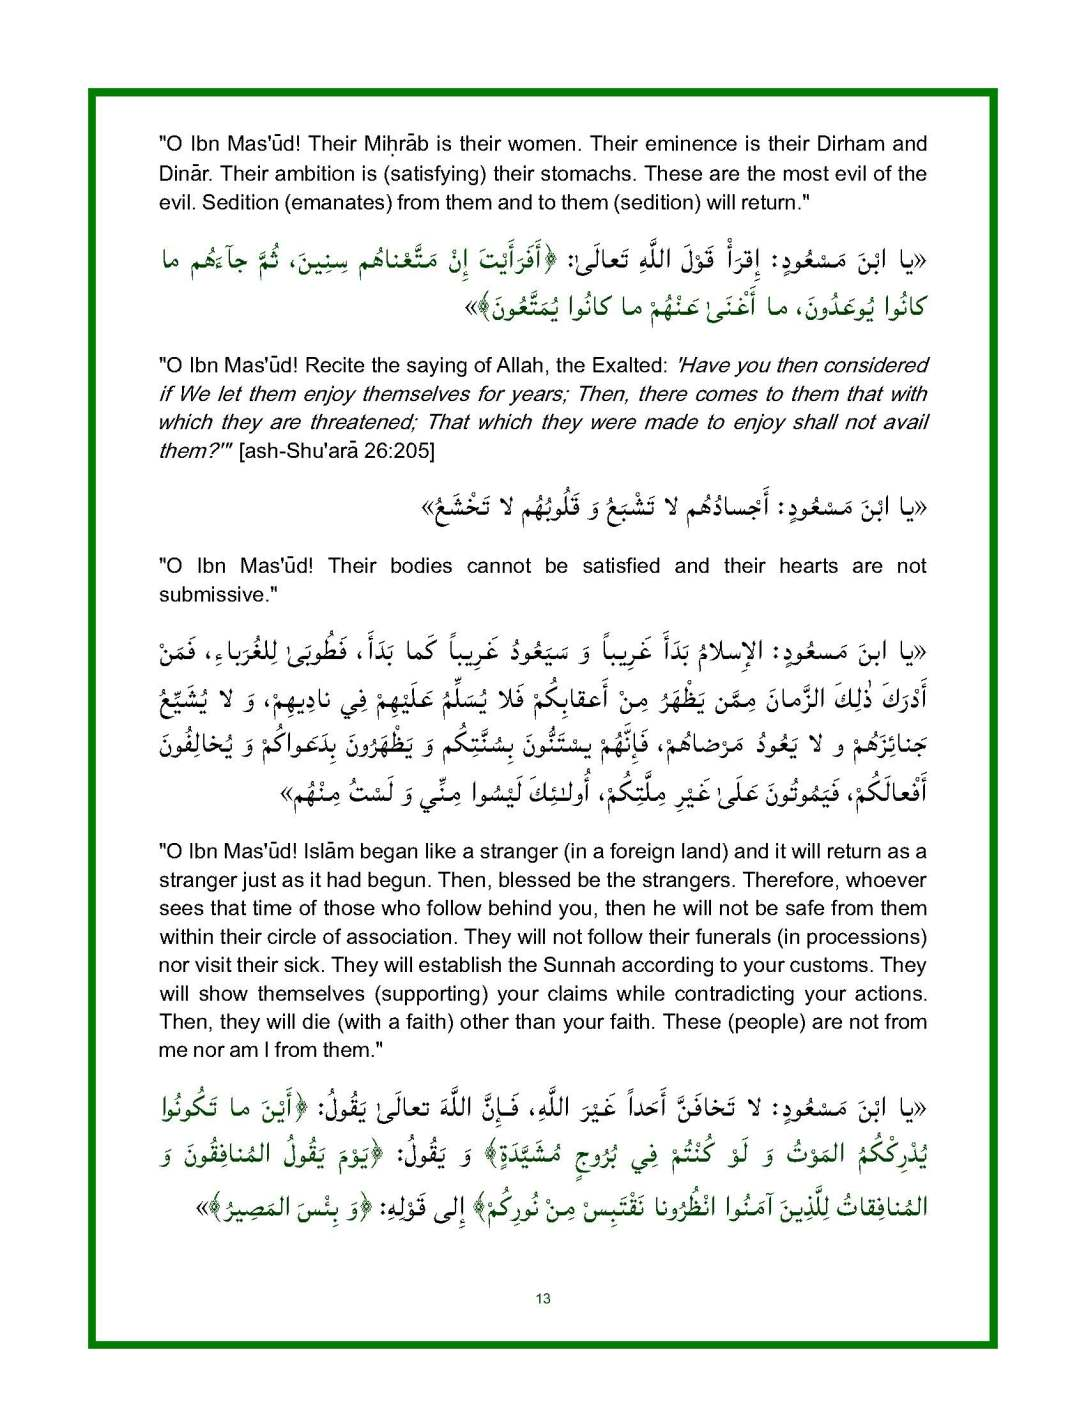 Spiritual-Advice-of-the-Messenger-of-Allah-for-Ibn-Masud-unlocked_Page_13